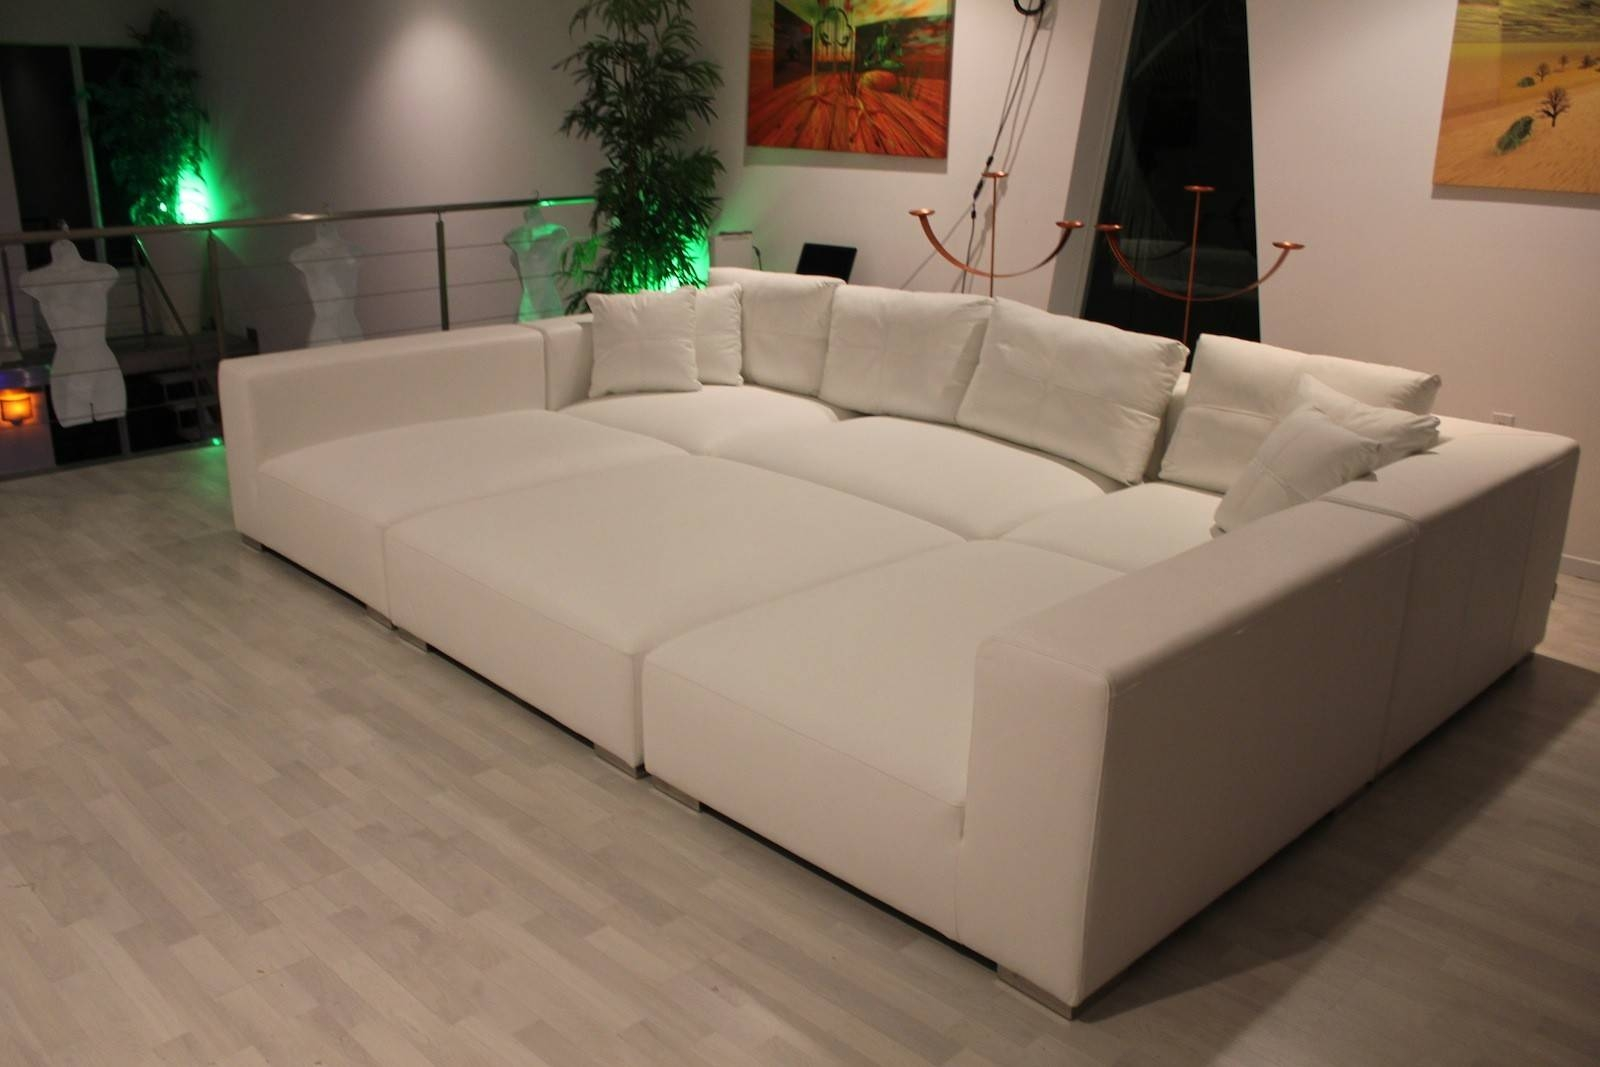 Amazing Couches. Simple Furniture Amazing Sectional Couches with regard to Wide Sectional Sofa (Image 4 of 25)